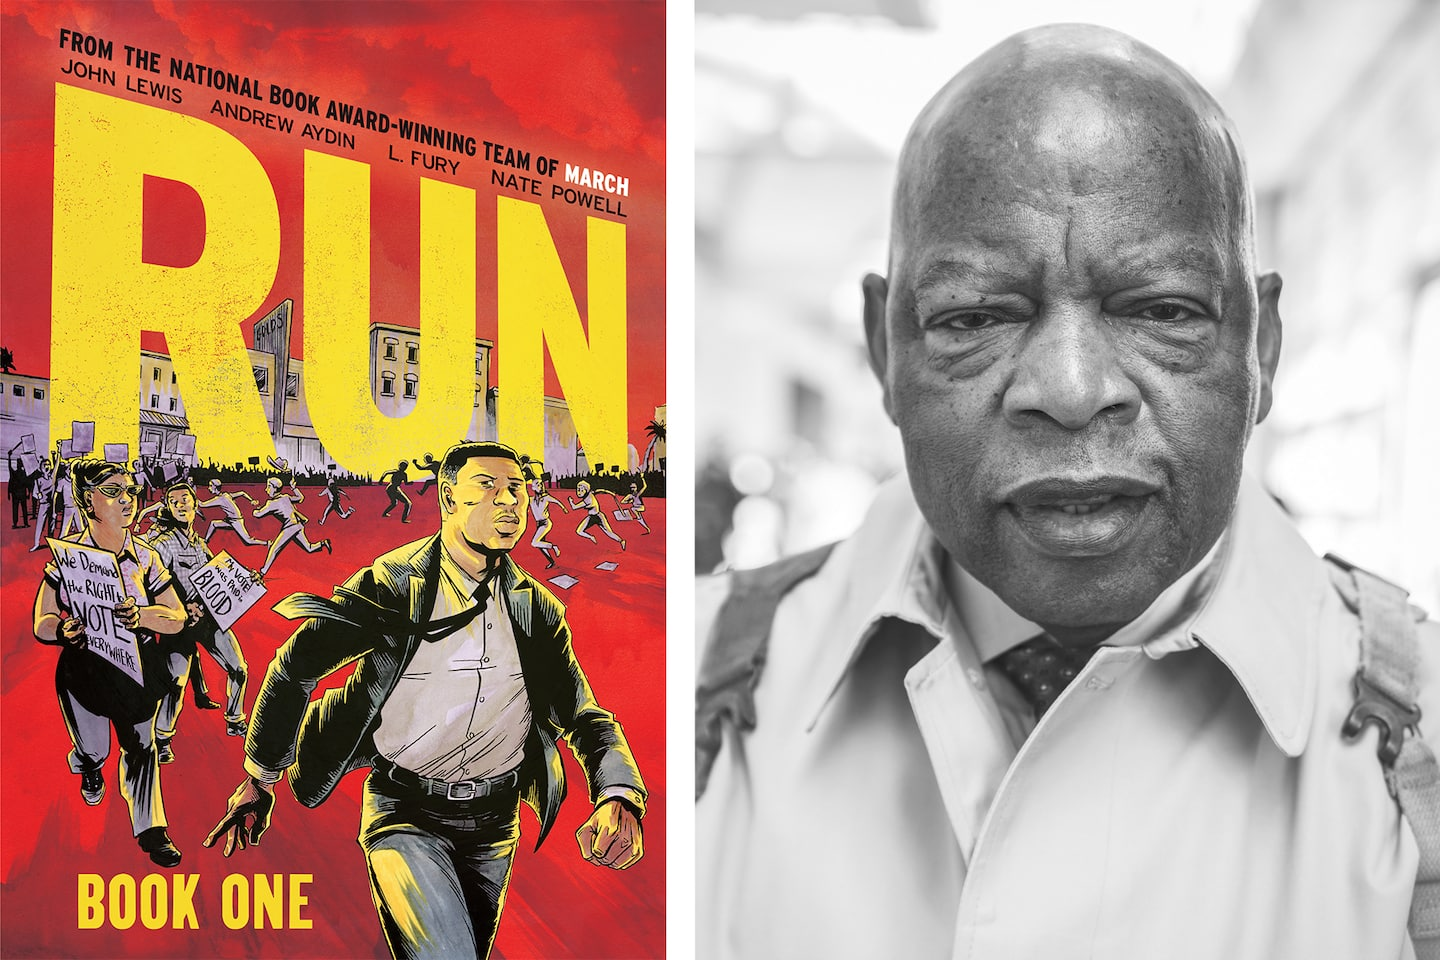 John Lewis's posthumous new graphic novel will be out this summer, in time for a new battle over voting rights